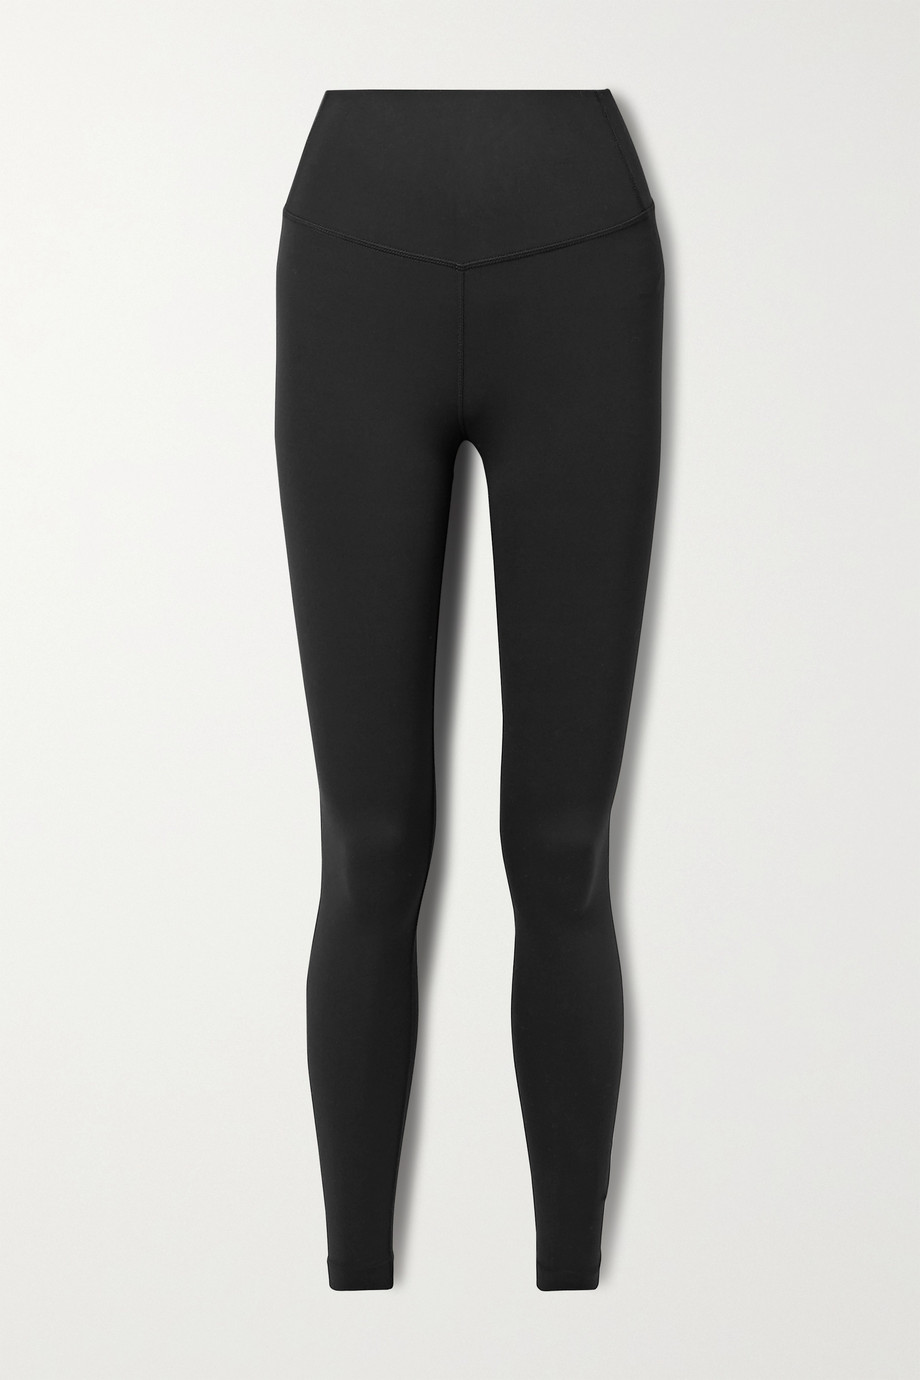 SPLITS59 Airweight stretch leggings